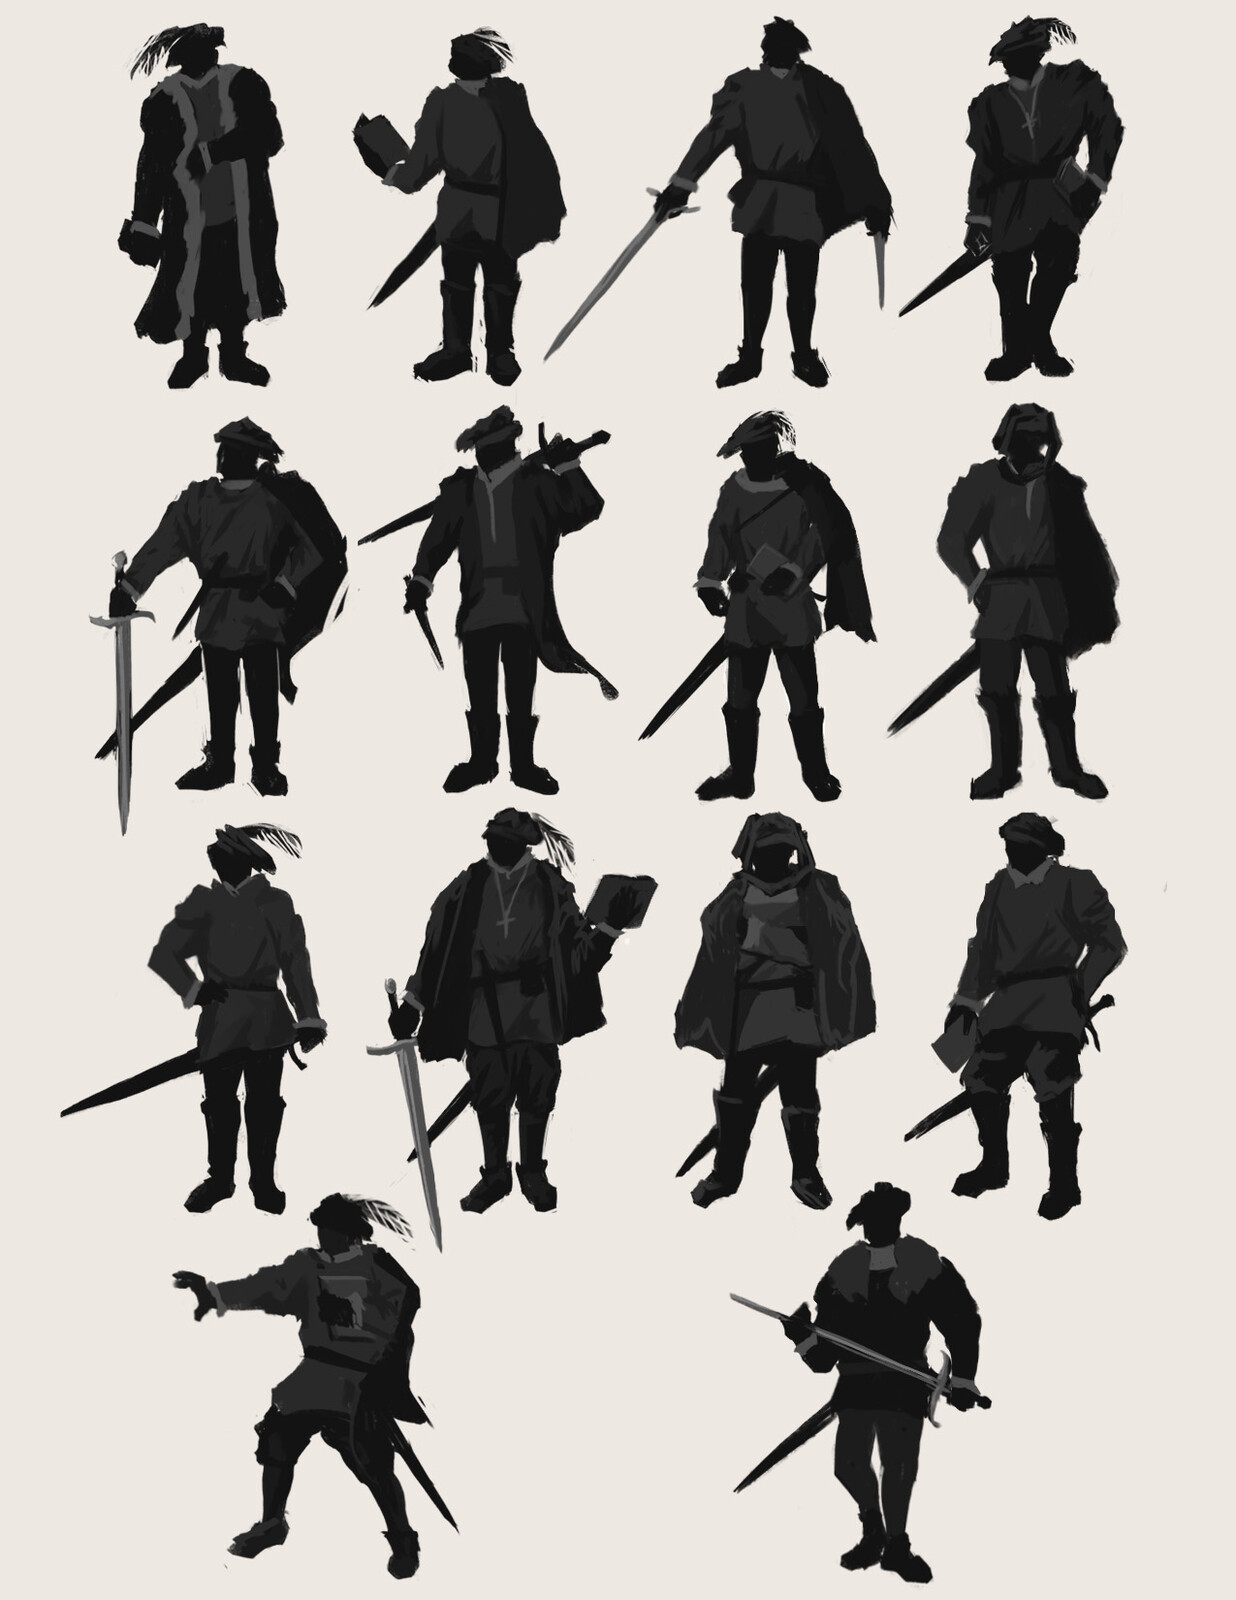 Initial silhouette thumbnail sketching (second from the third row was chosen)